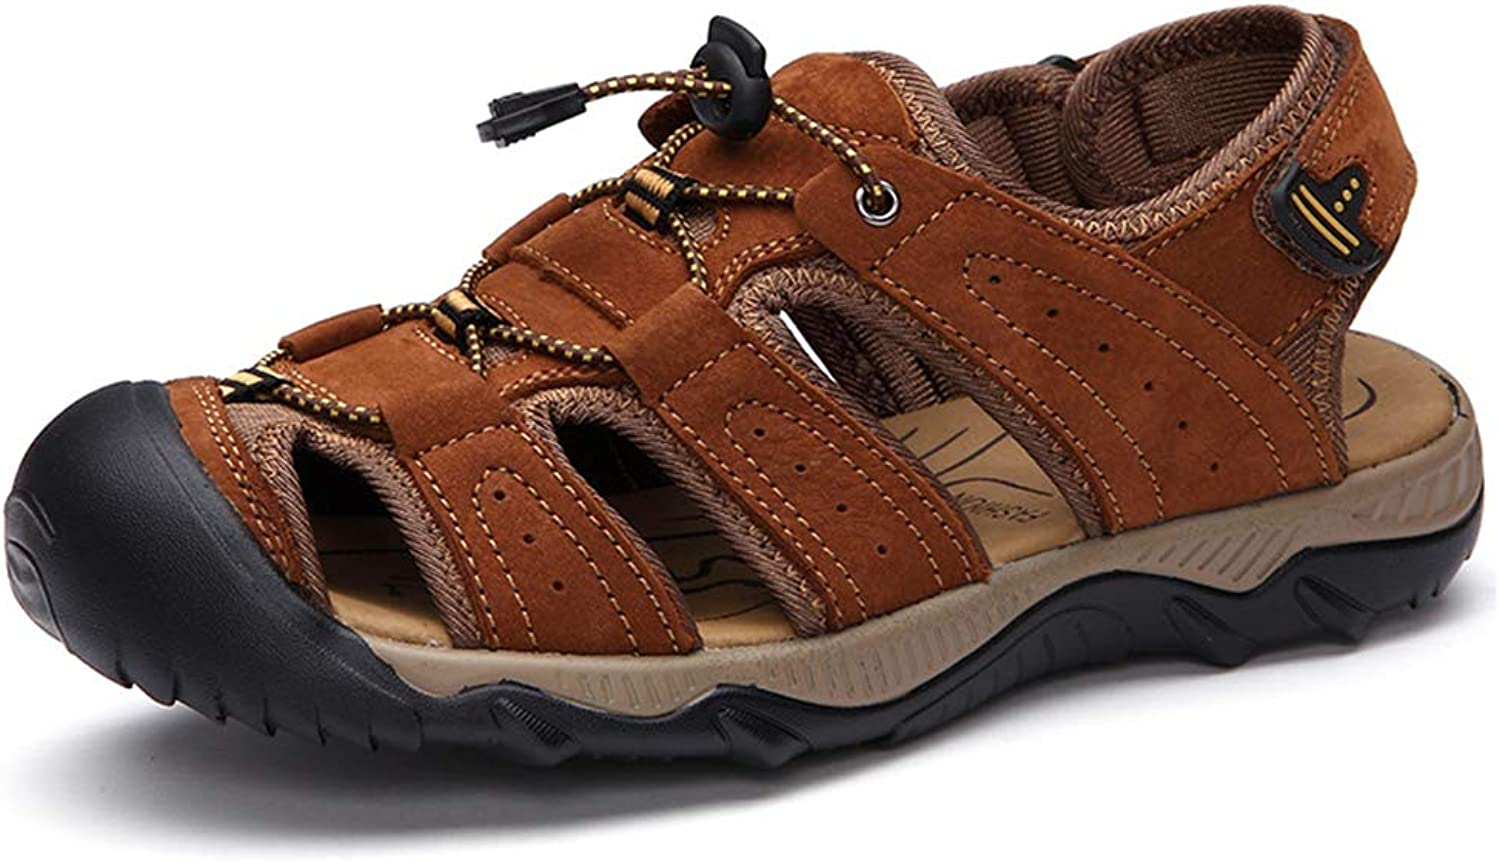 Men Sports Sandals Outdoor Athletic Hiking Leather Fisherman Beach shoes Traveling,a,43